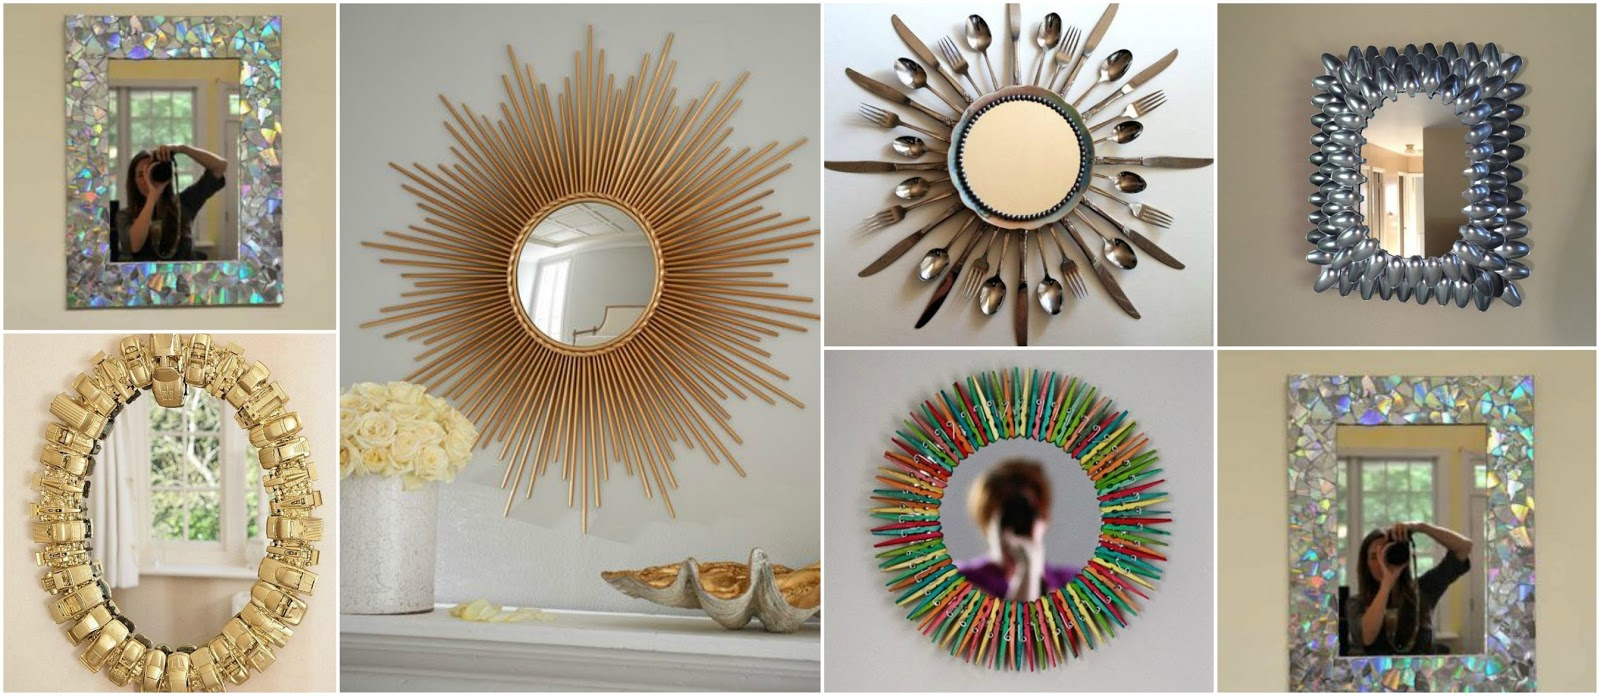 11 ideas originales para decorar espejos en casa lodijoella for Espejos redondos para decorar